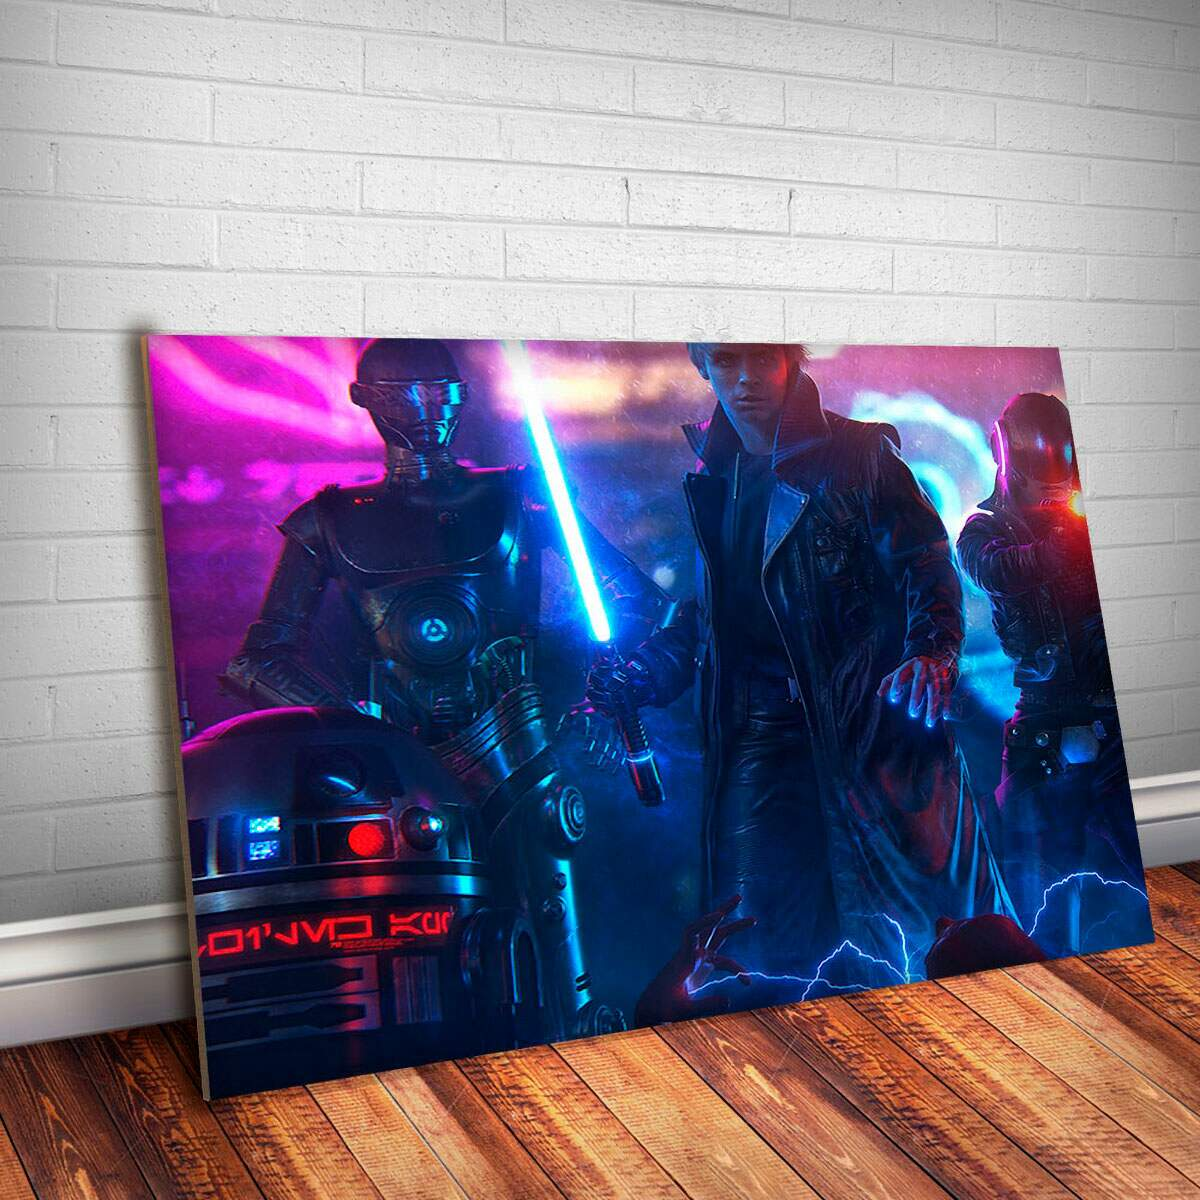 Placa Decorativa Star Wars 99